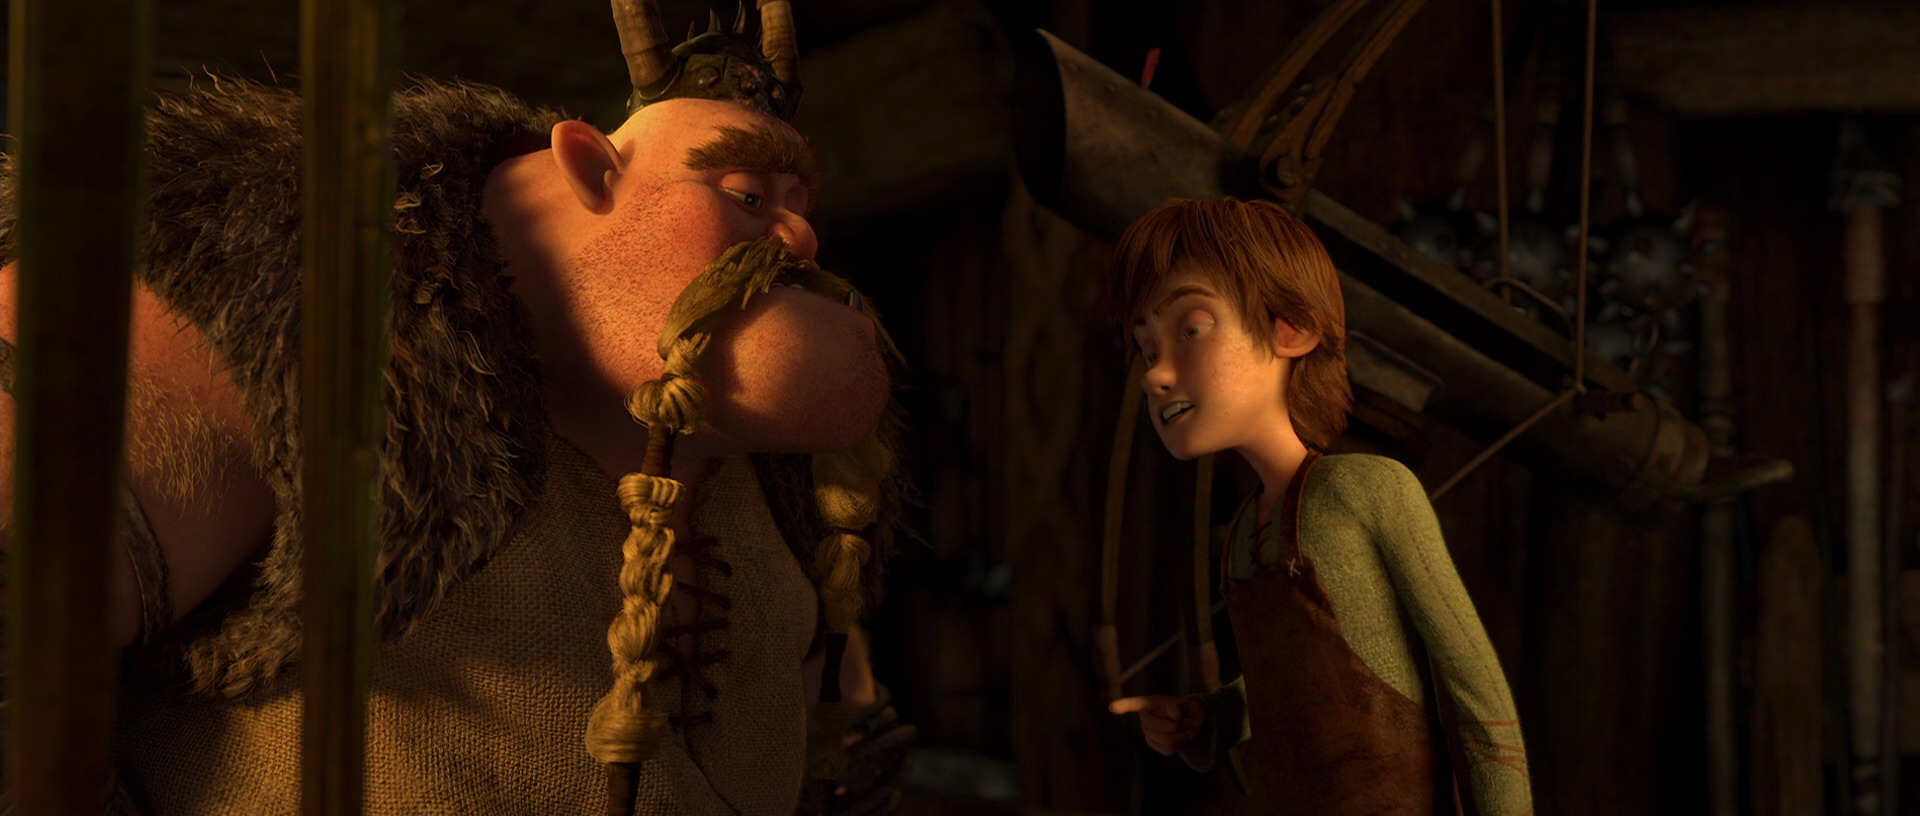 Gobber and Hiccup's Relationship